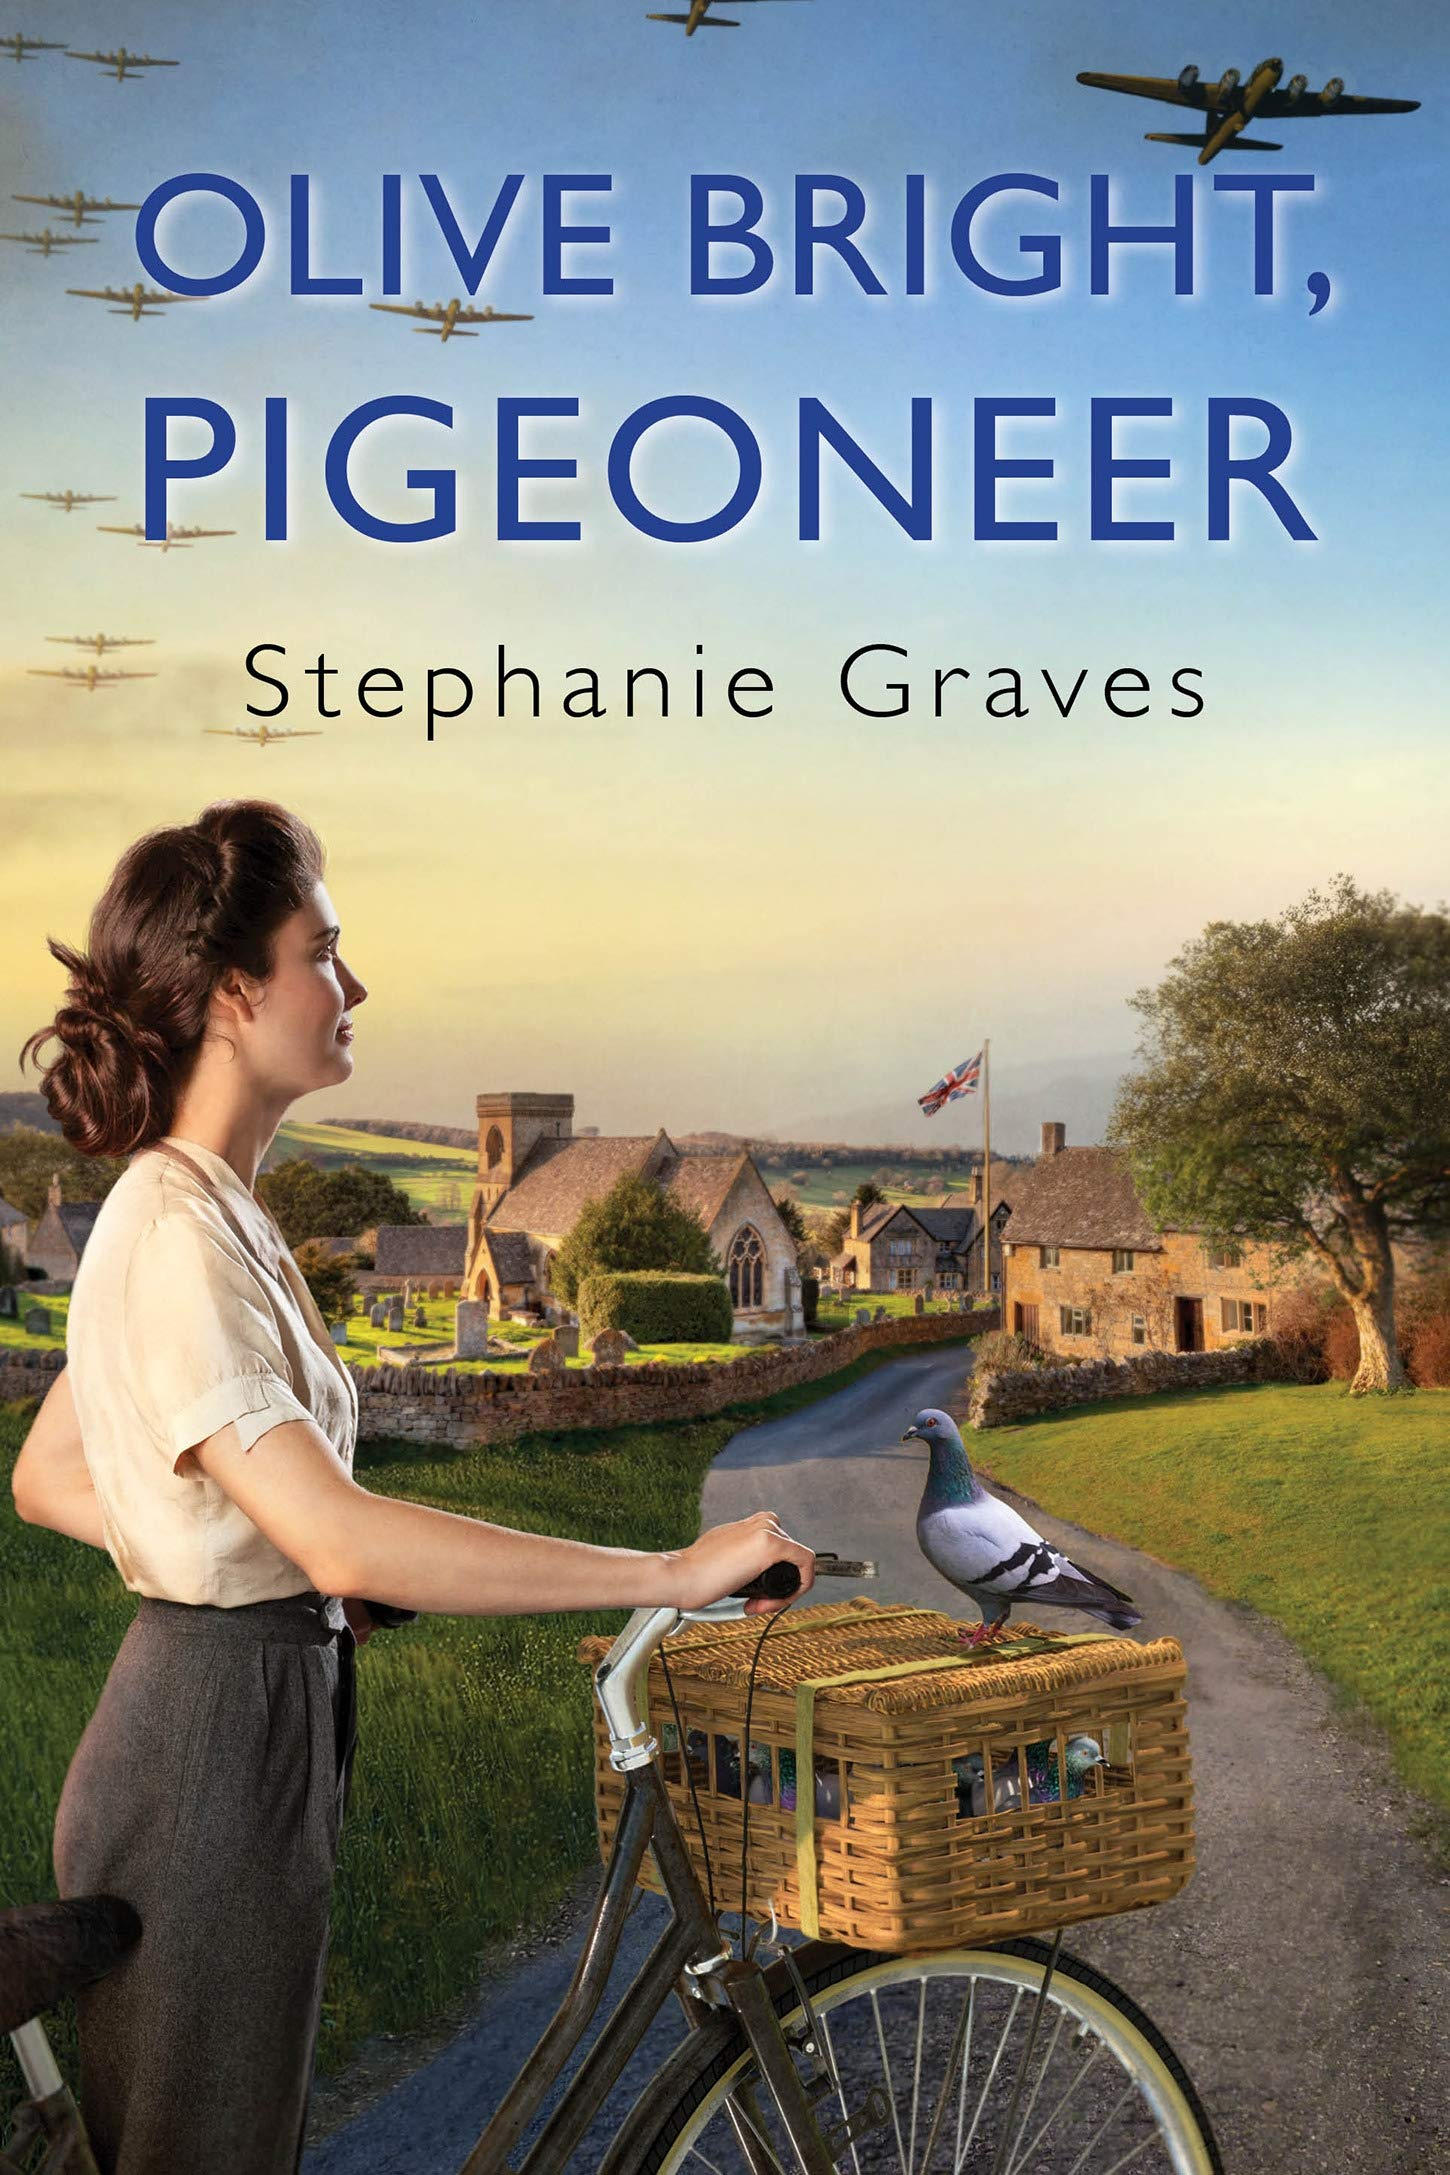 Amazon.com: Olive Bright, Pigeoneer (An Olive Bright Mystery):  9781496731517: Graves, Stephanie: Books